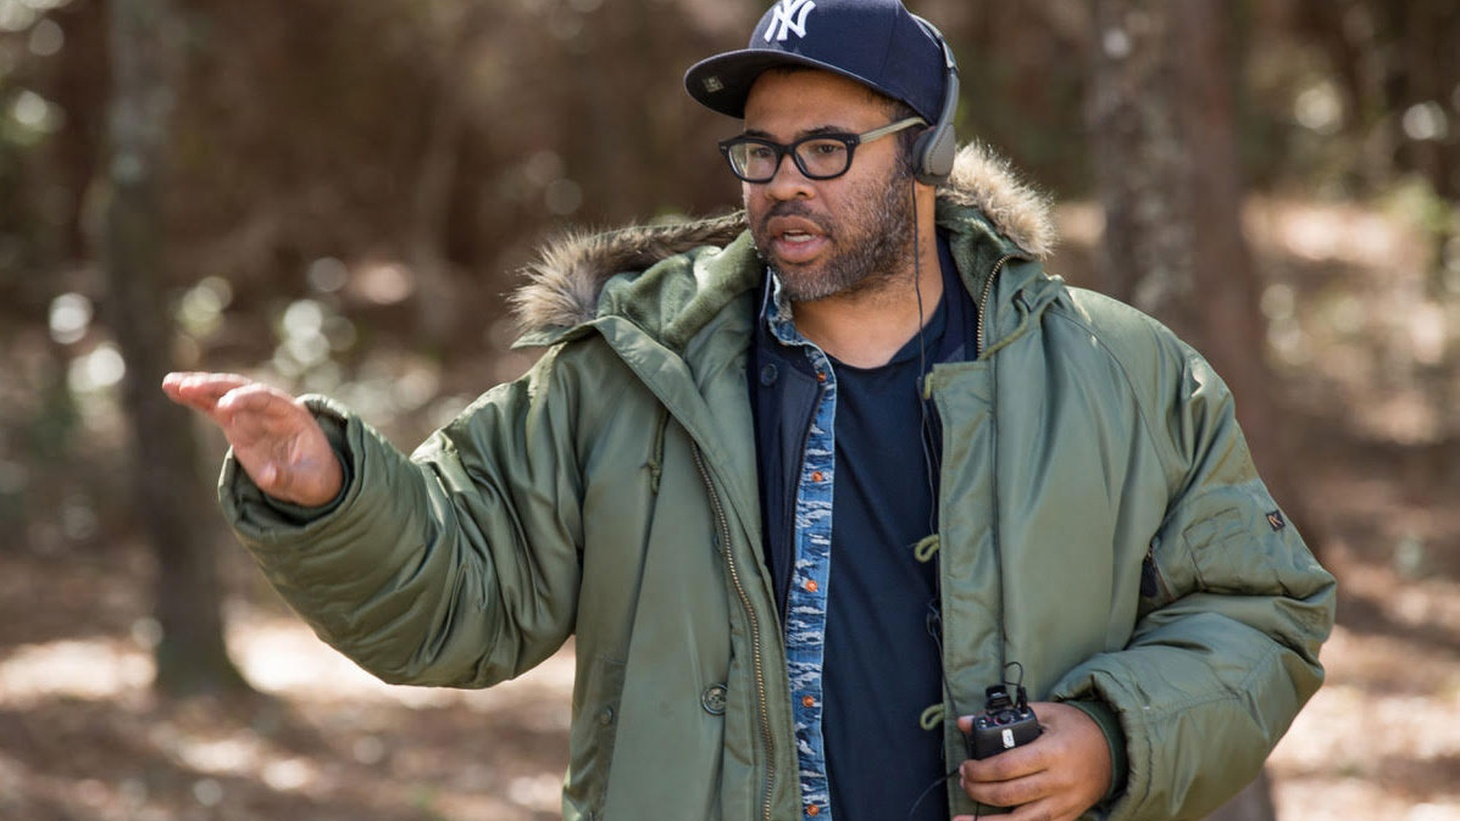 A year ago, a satirical horror film about race relations in America would not have sounded like an idea for a hit movie. But 'Get Out' was a box-office smash and it's nominated for 4 Oscars, including best picture.